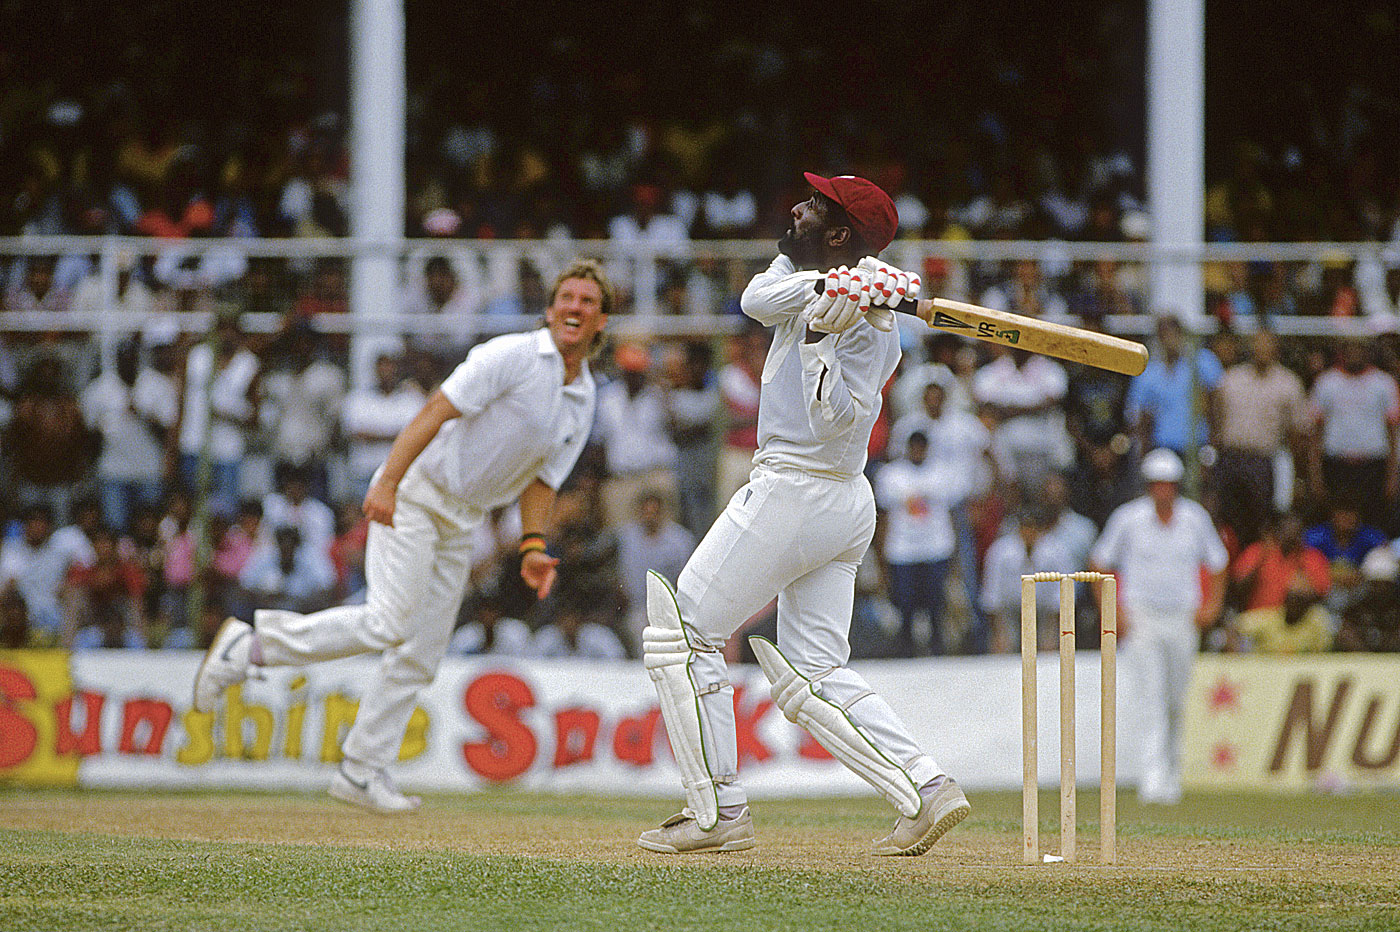 All's fair in friendship and cricket: Richards thrashed everyone, including best mate Beefy